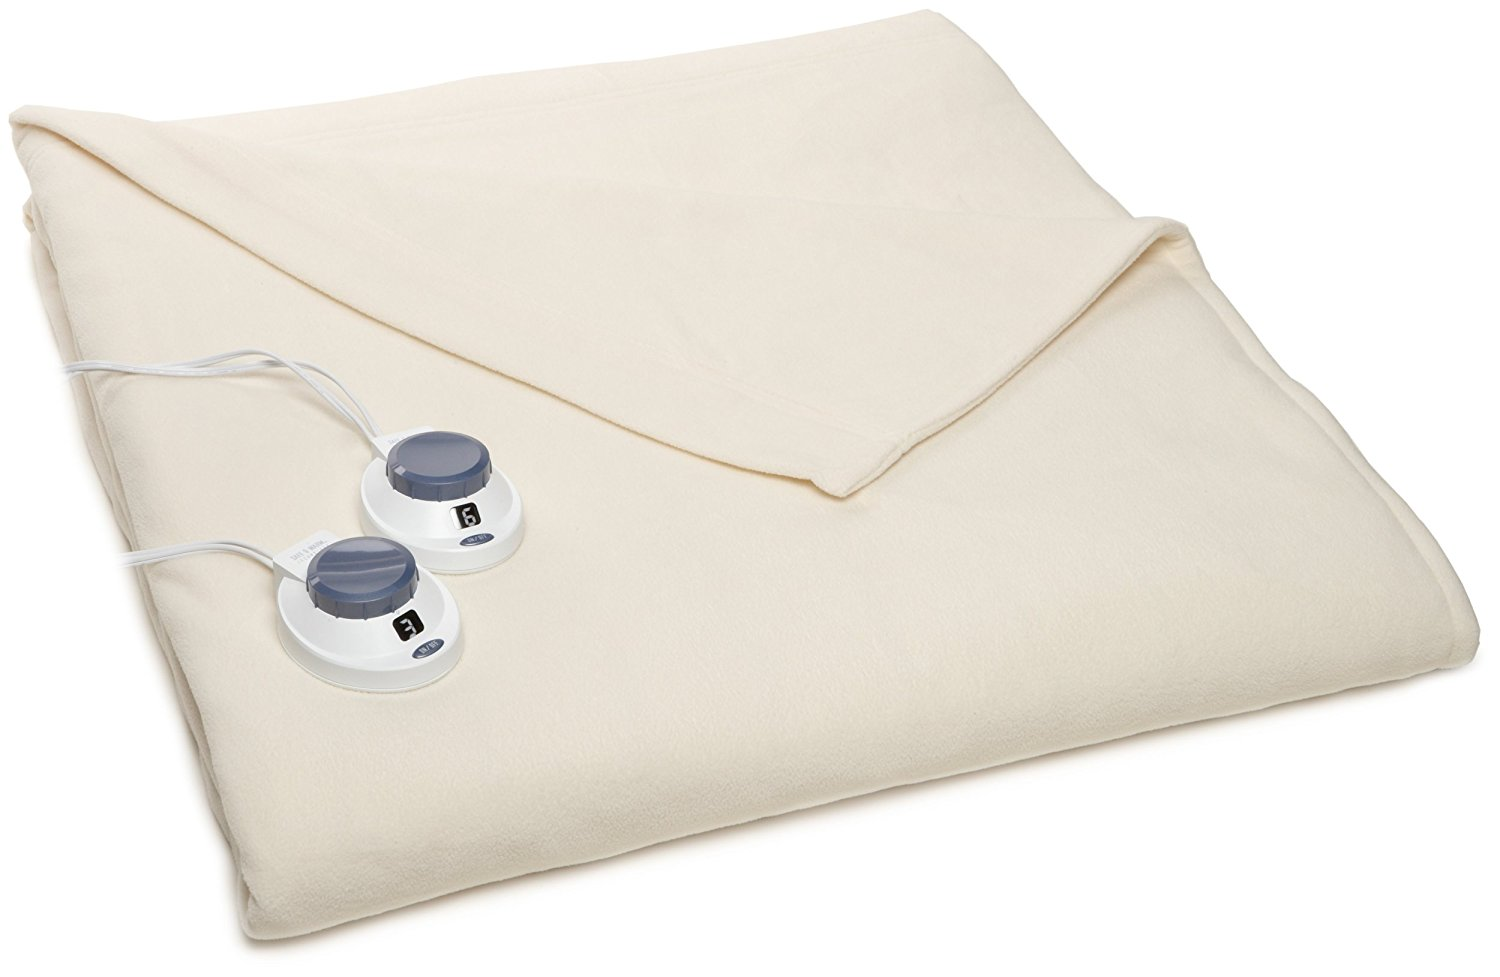 Soft Heat Micro-Fleece Electric Heated Blanket